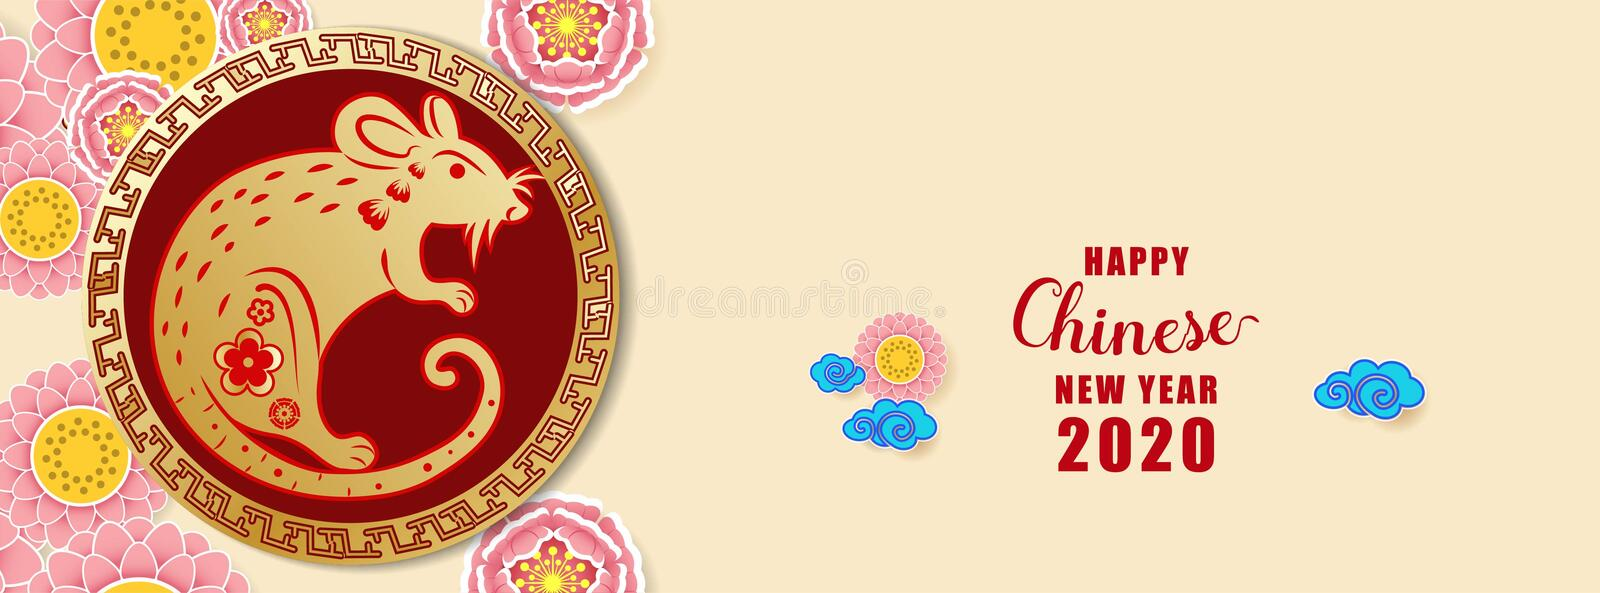 Happy Chinese new year 2020. Year of the rat. Colorful hand crafted art paper cut style. vector illustration